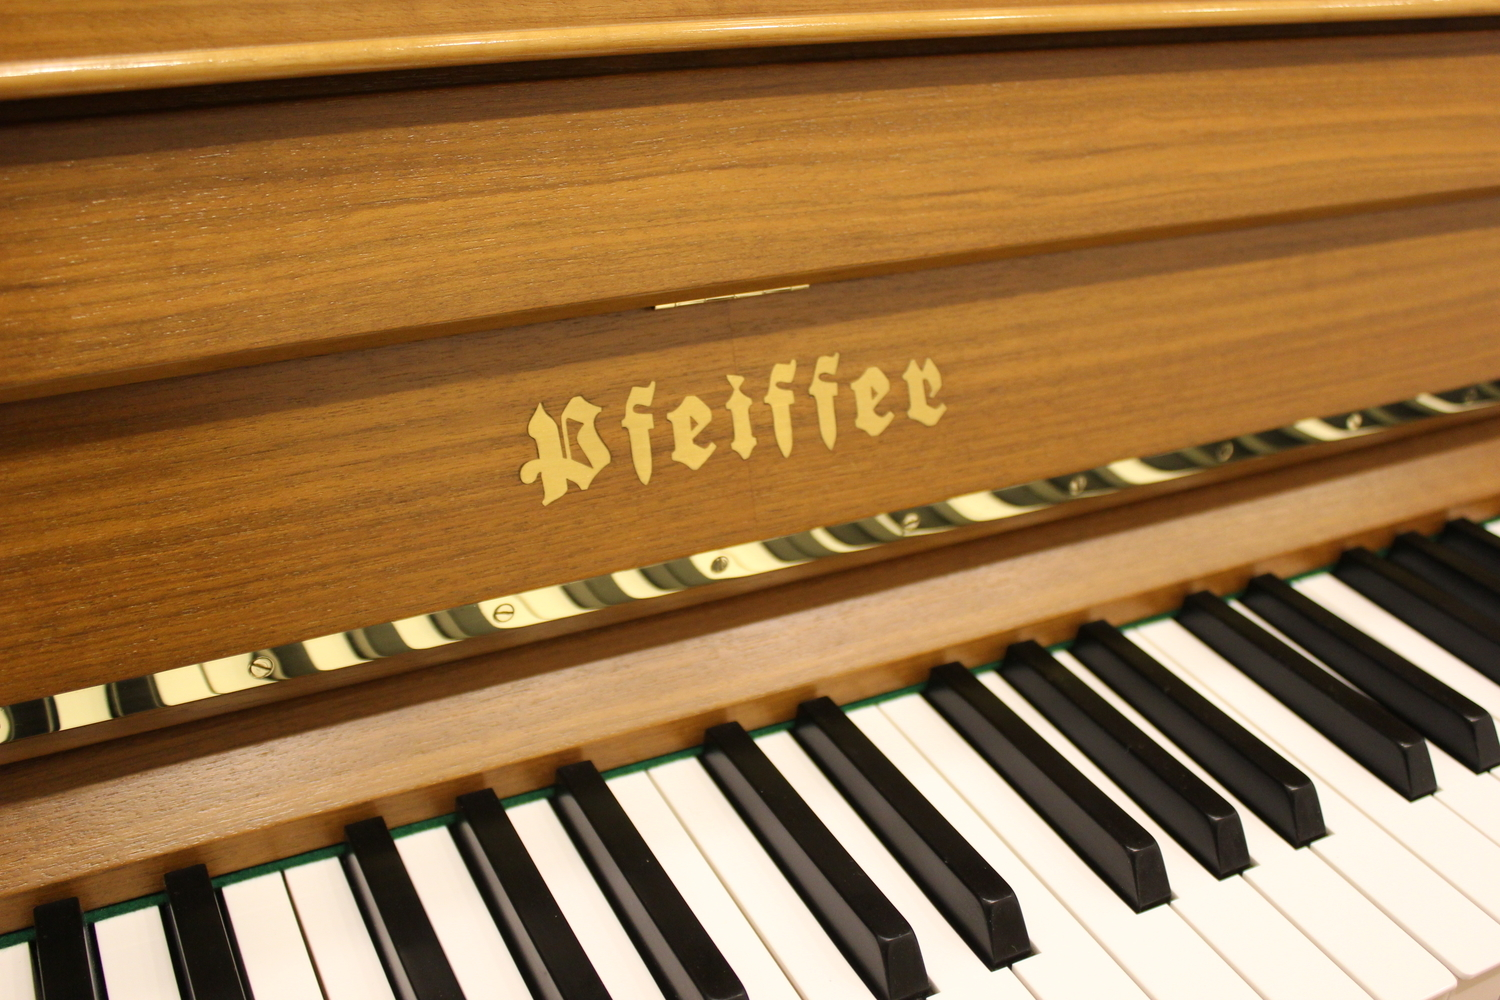 Pfeiffer , Mod. 116 T Tradition Klavier